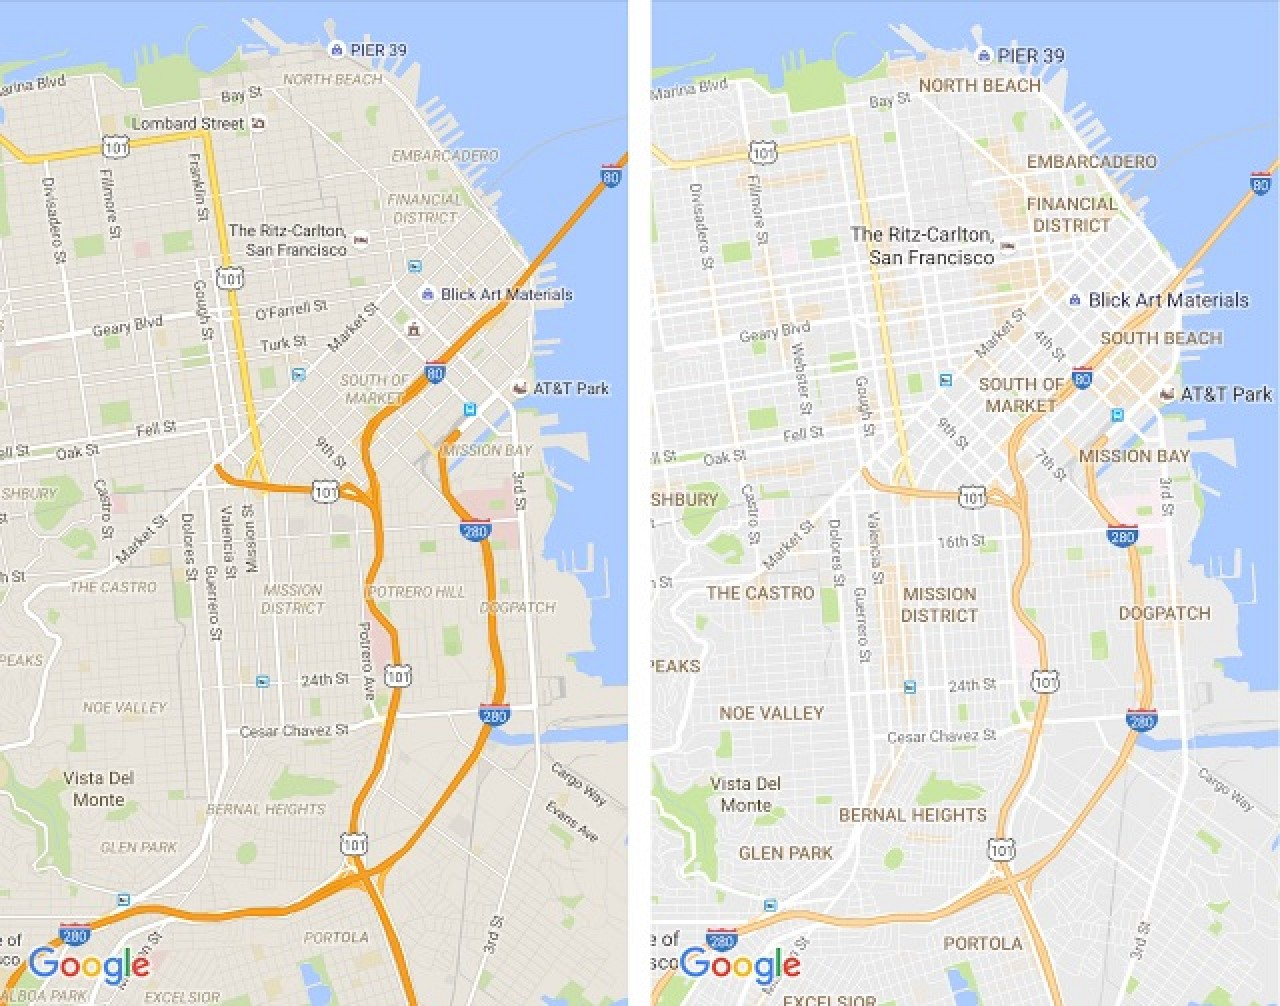 google maps gets cleaner look and orange 'areas of interest  - google maps gets cleaner look and orange 'areas of interest' hotspots  macrumors